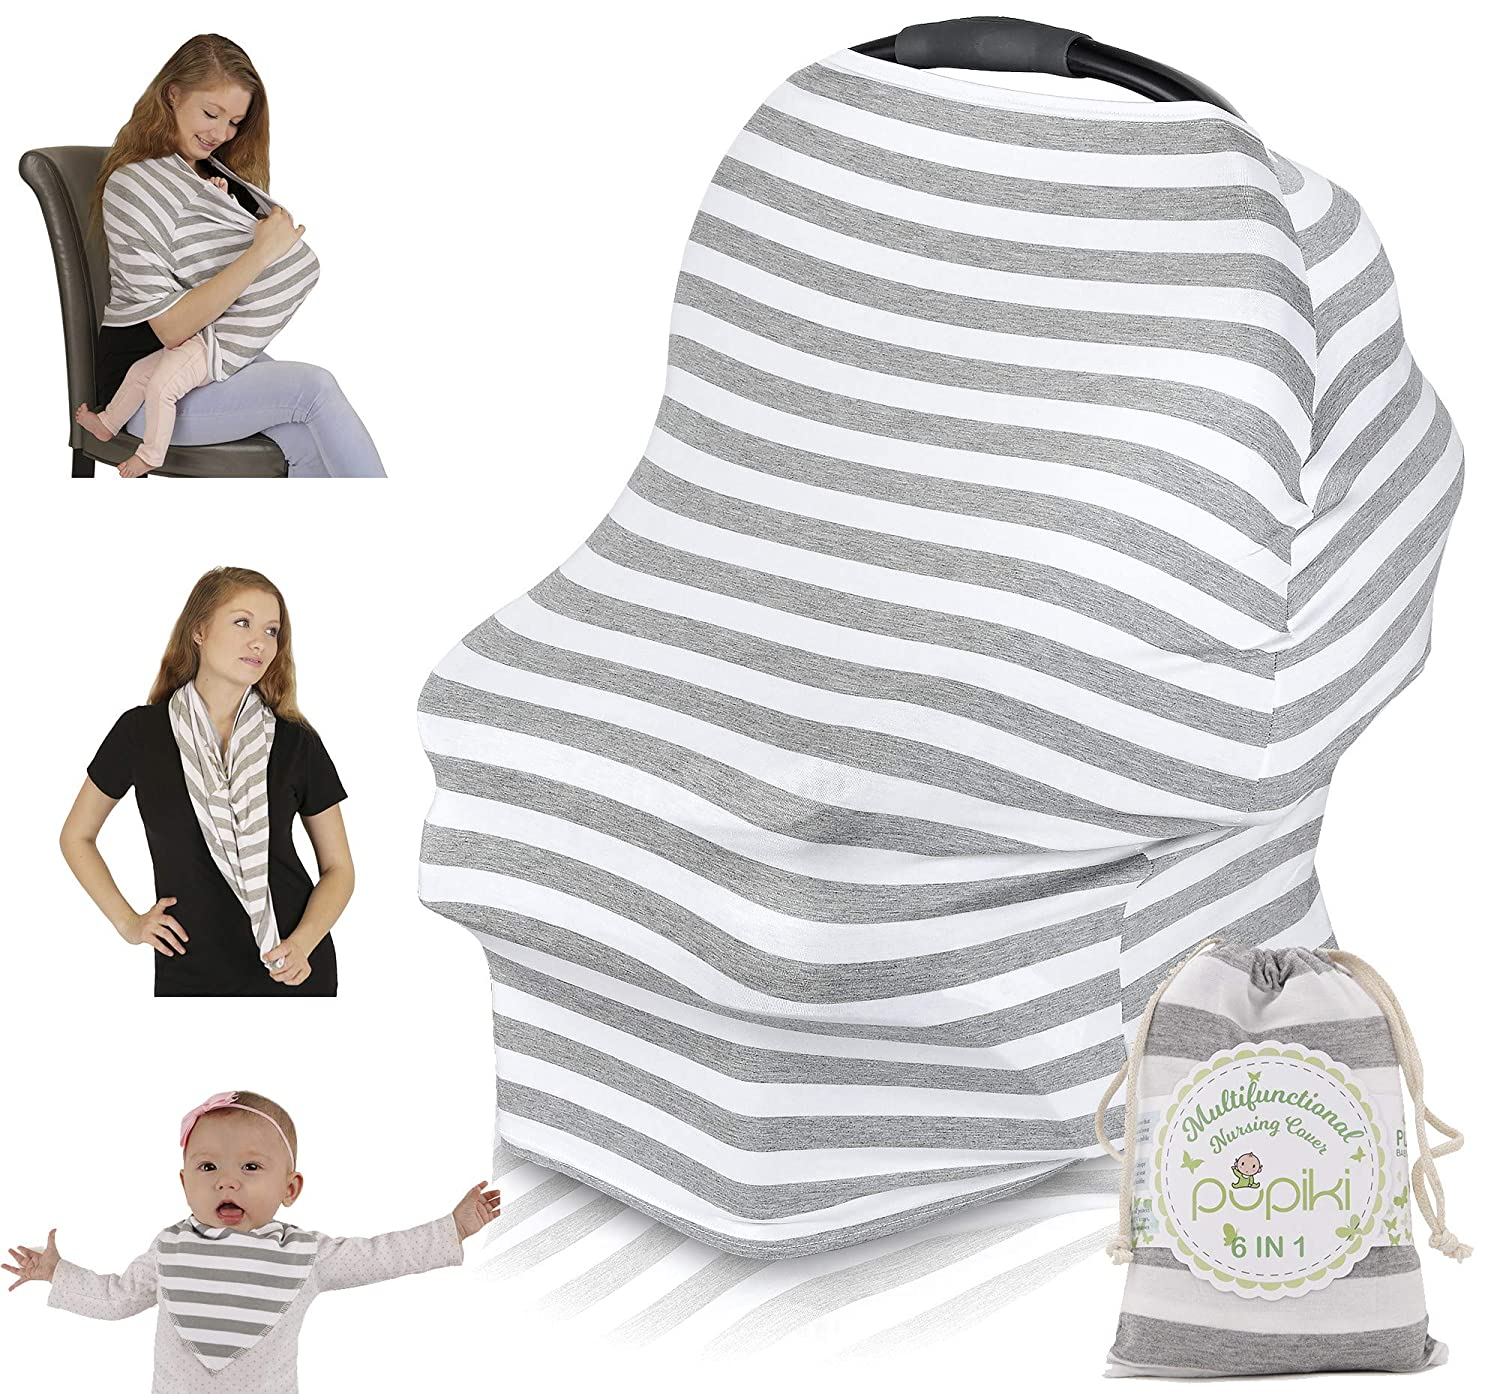 Stretchy Grey /& White Weatherproof Nursing Scarf Car Seat Cover /& Stroller Canopy Secure Breastfeeding Cover Matching Breastfeeding Bag /& Bandana Bib by Pupiki Multipurpose Nursing Cover Soft